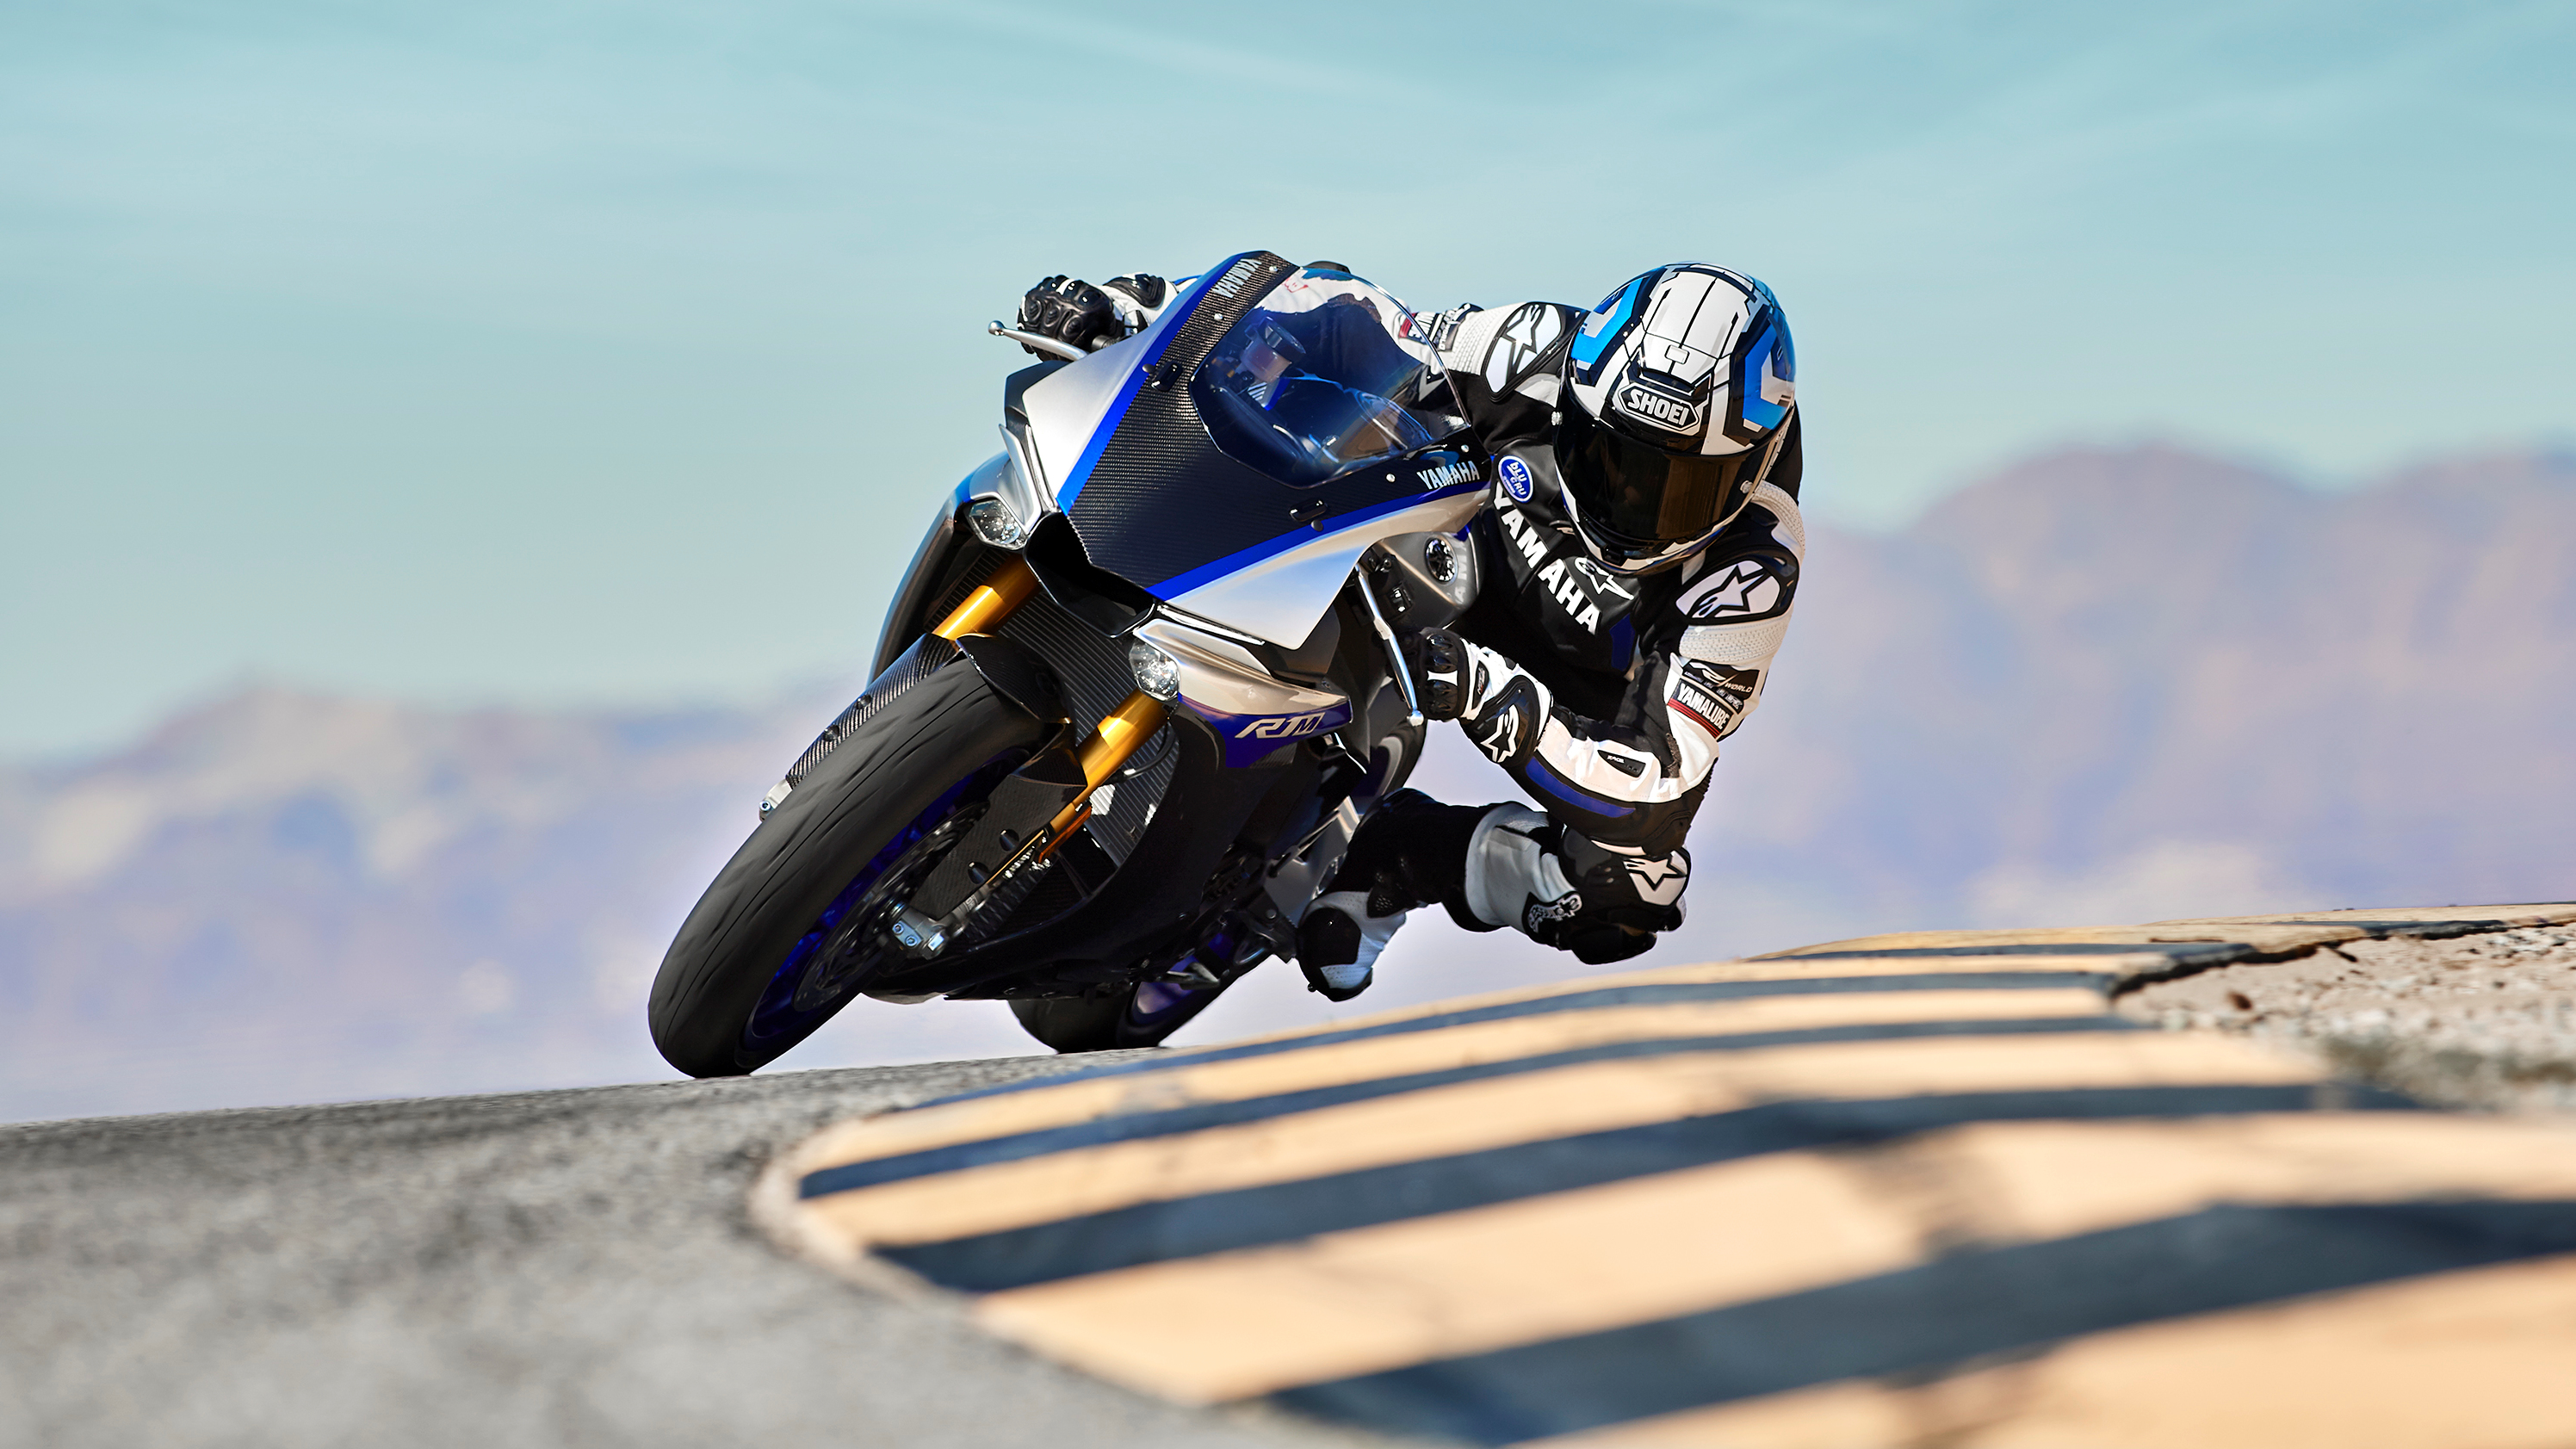 A New Yamaha Yzf R1 On The Way Because Of Euro5 Rules Imotorbike News